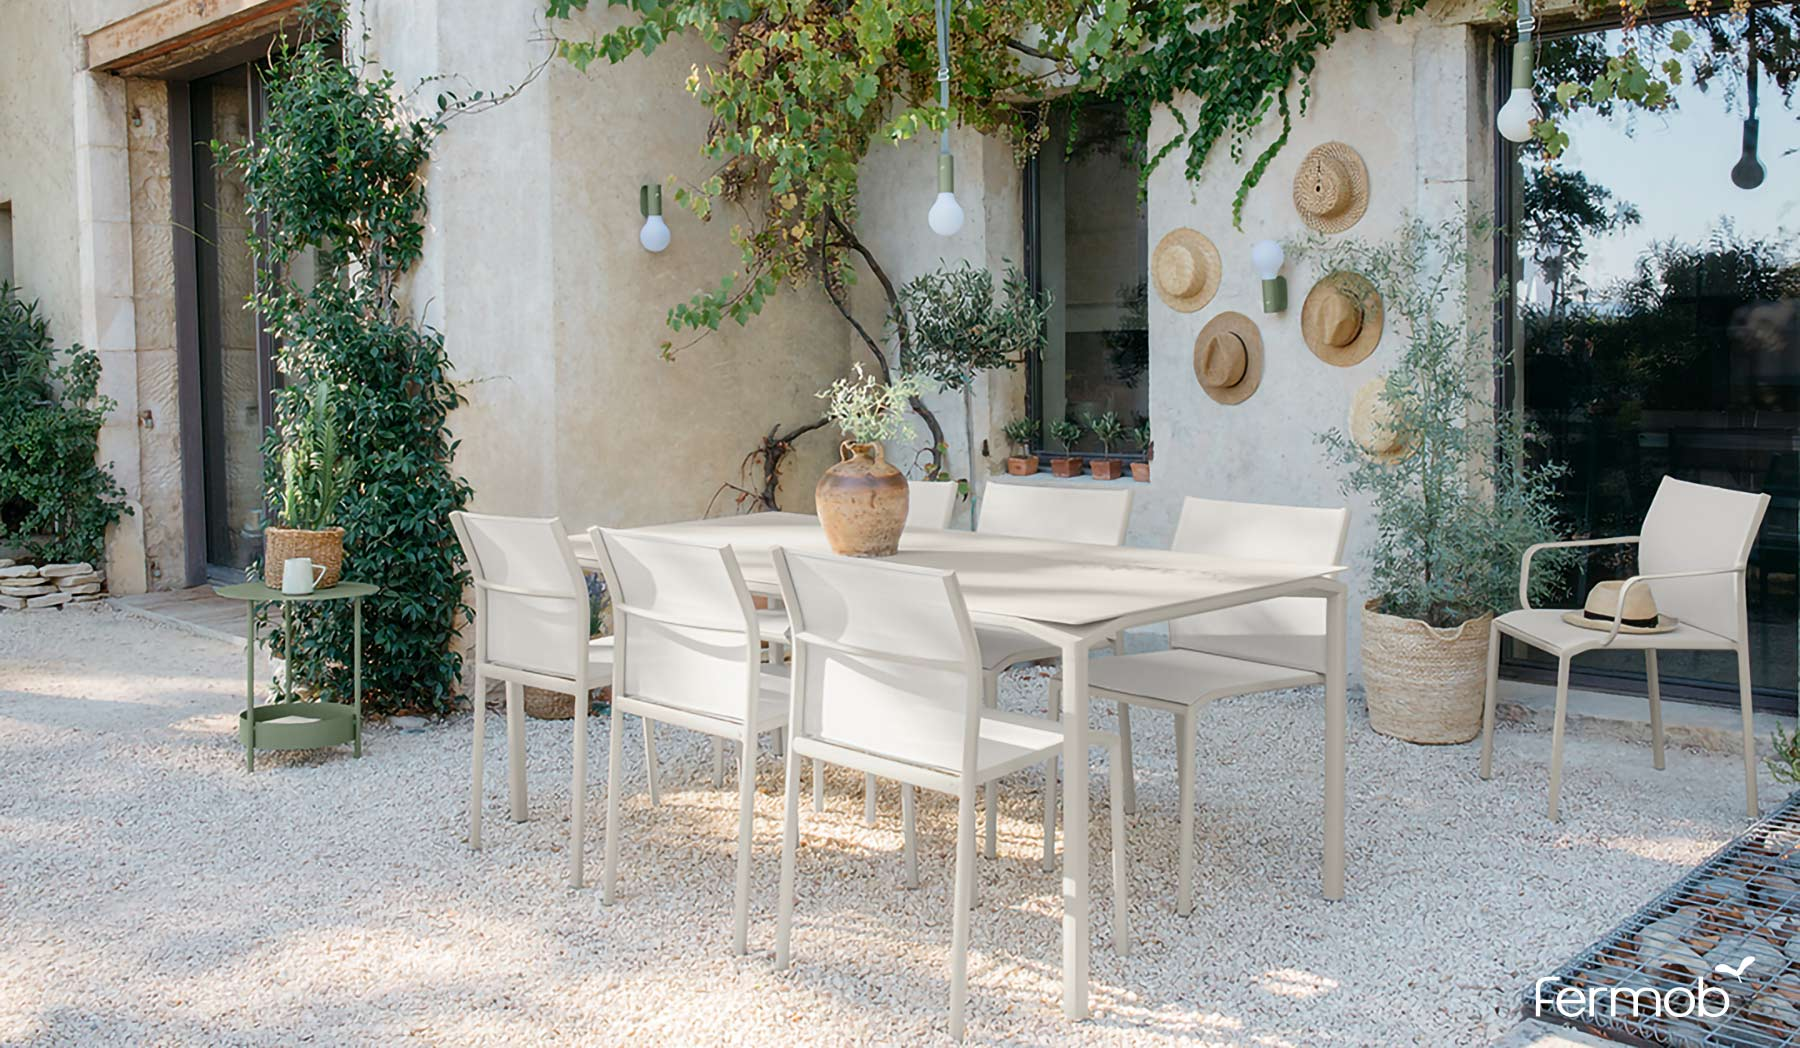 Fermob Calvi Large Outdoor Dining Table